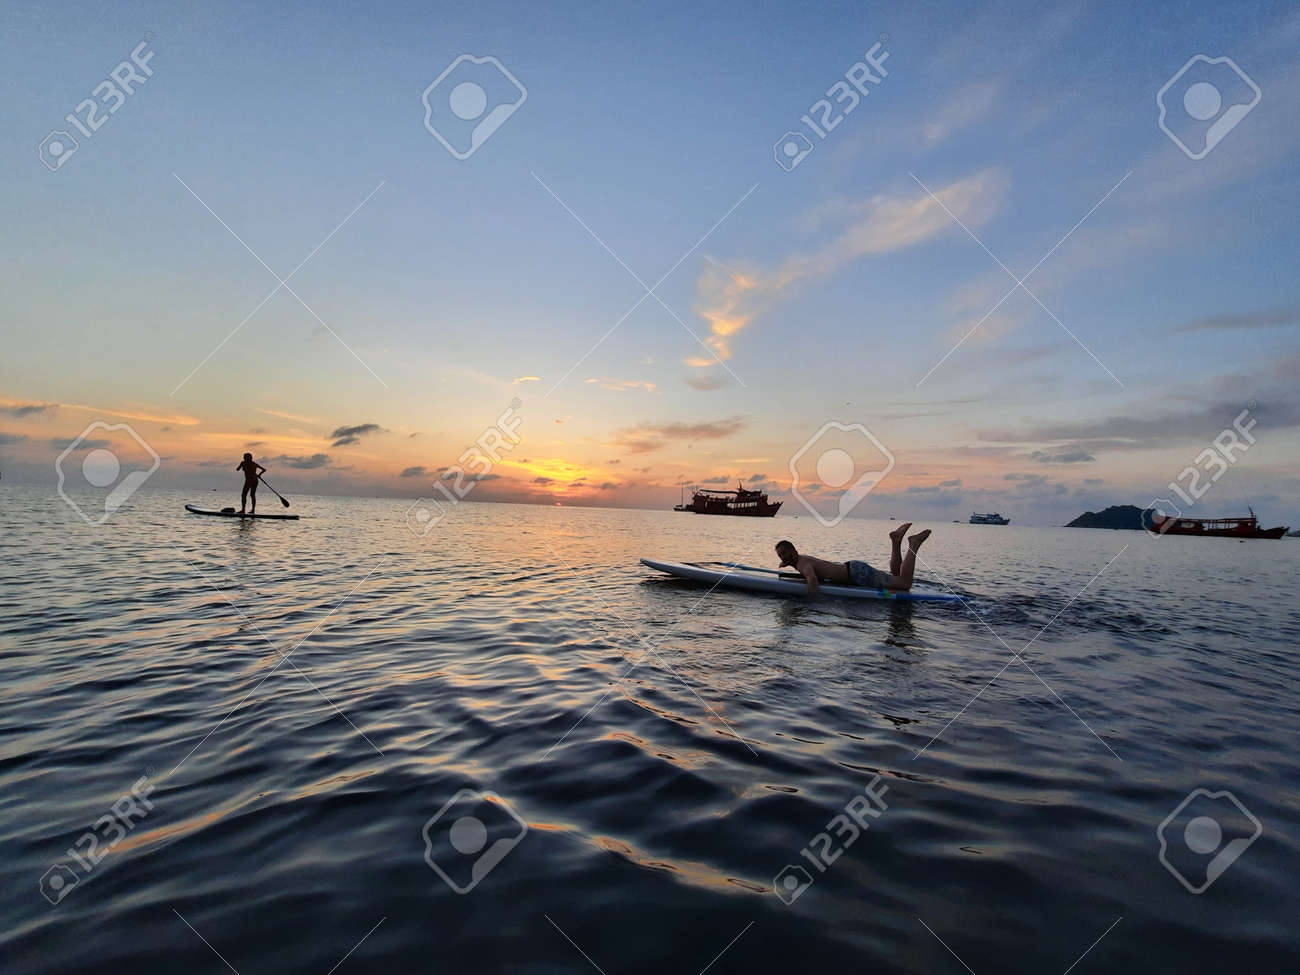 on a stand up paddle board, young man 34 years old, German, lies on a board on the ocean in Thailand, on the island Koh Tao at sunset - 169664548